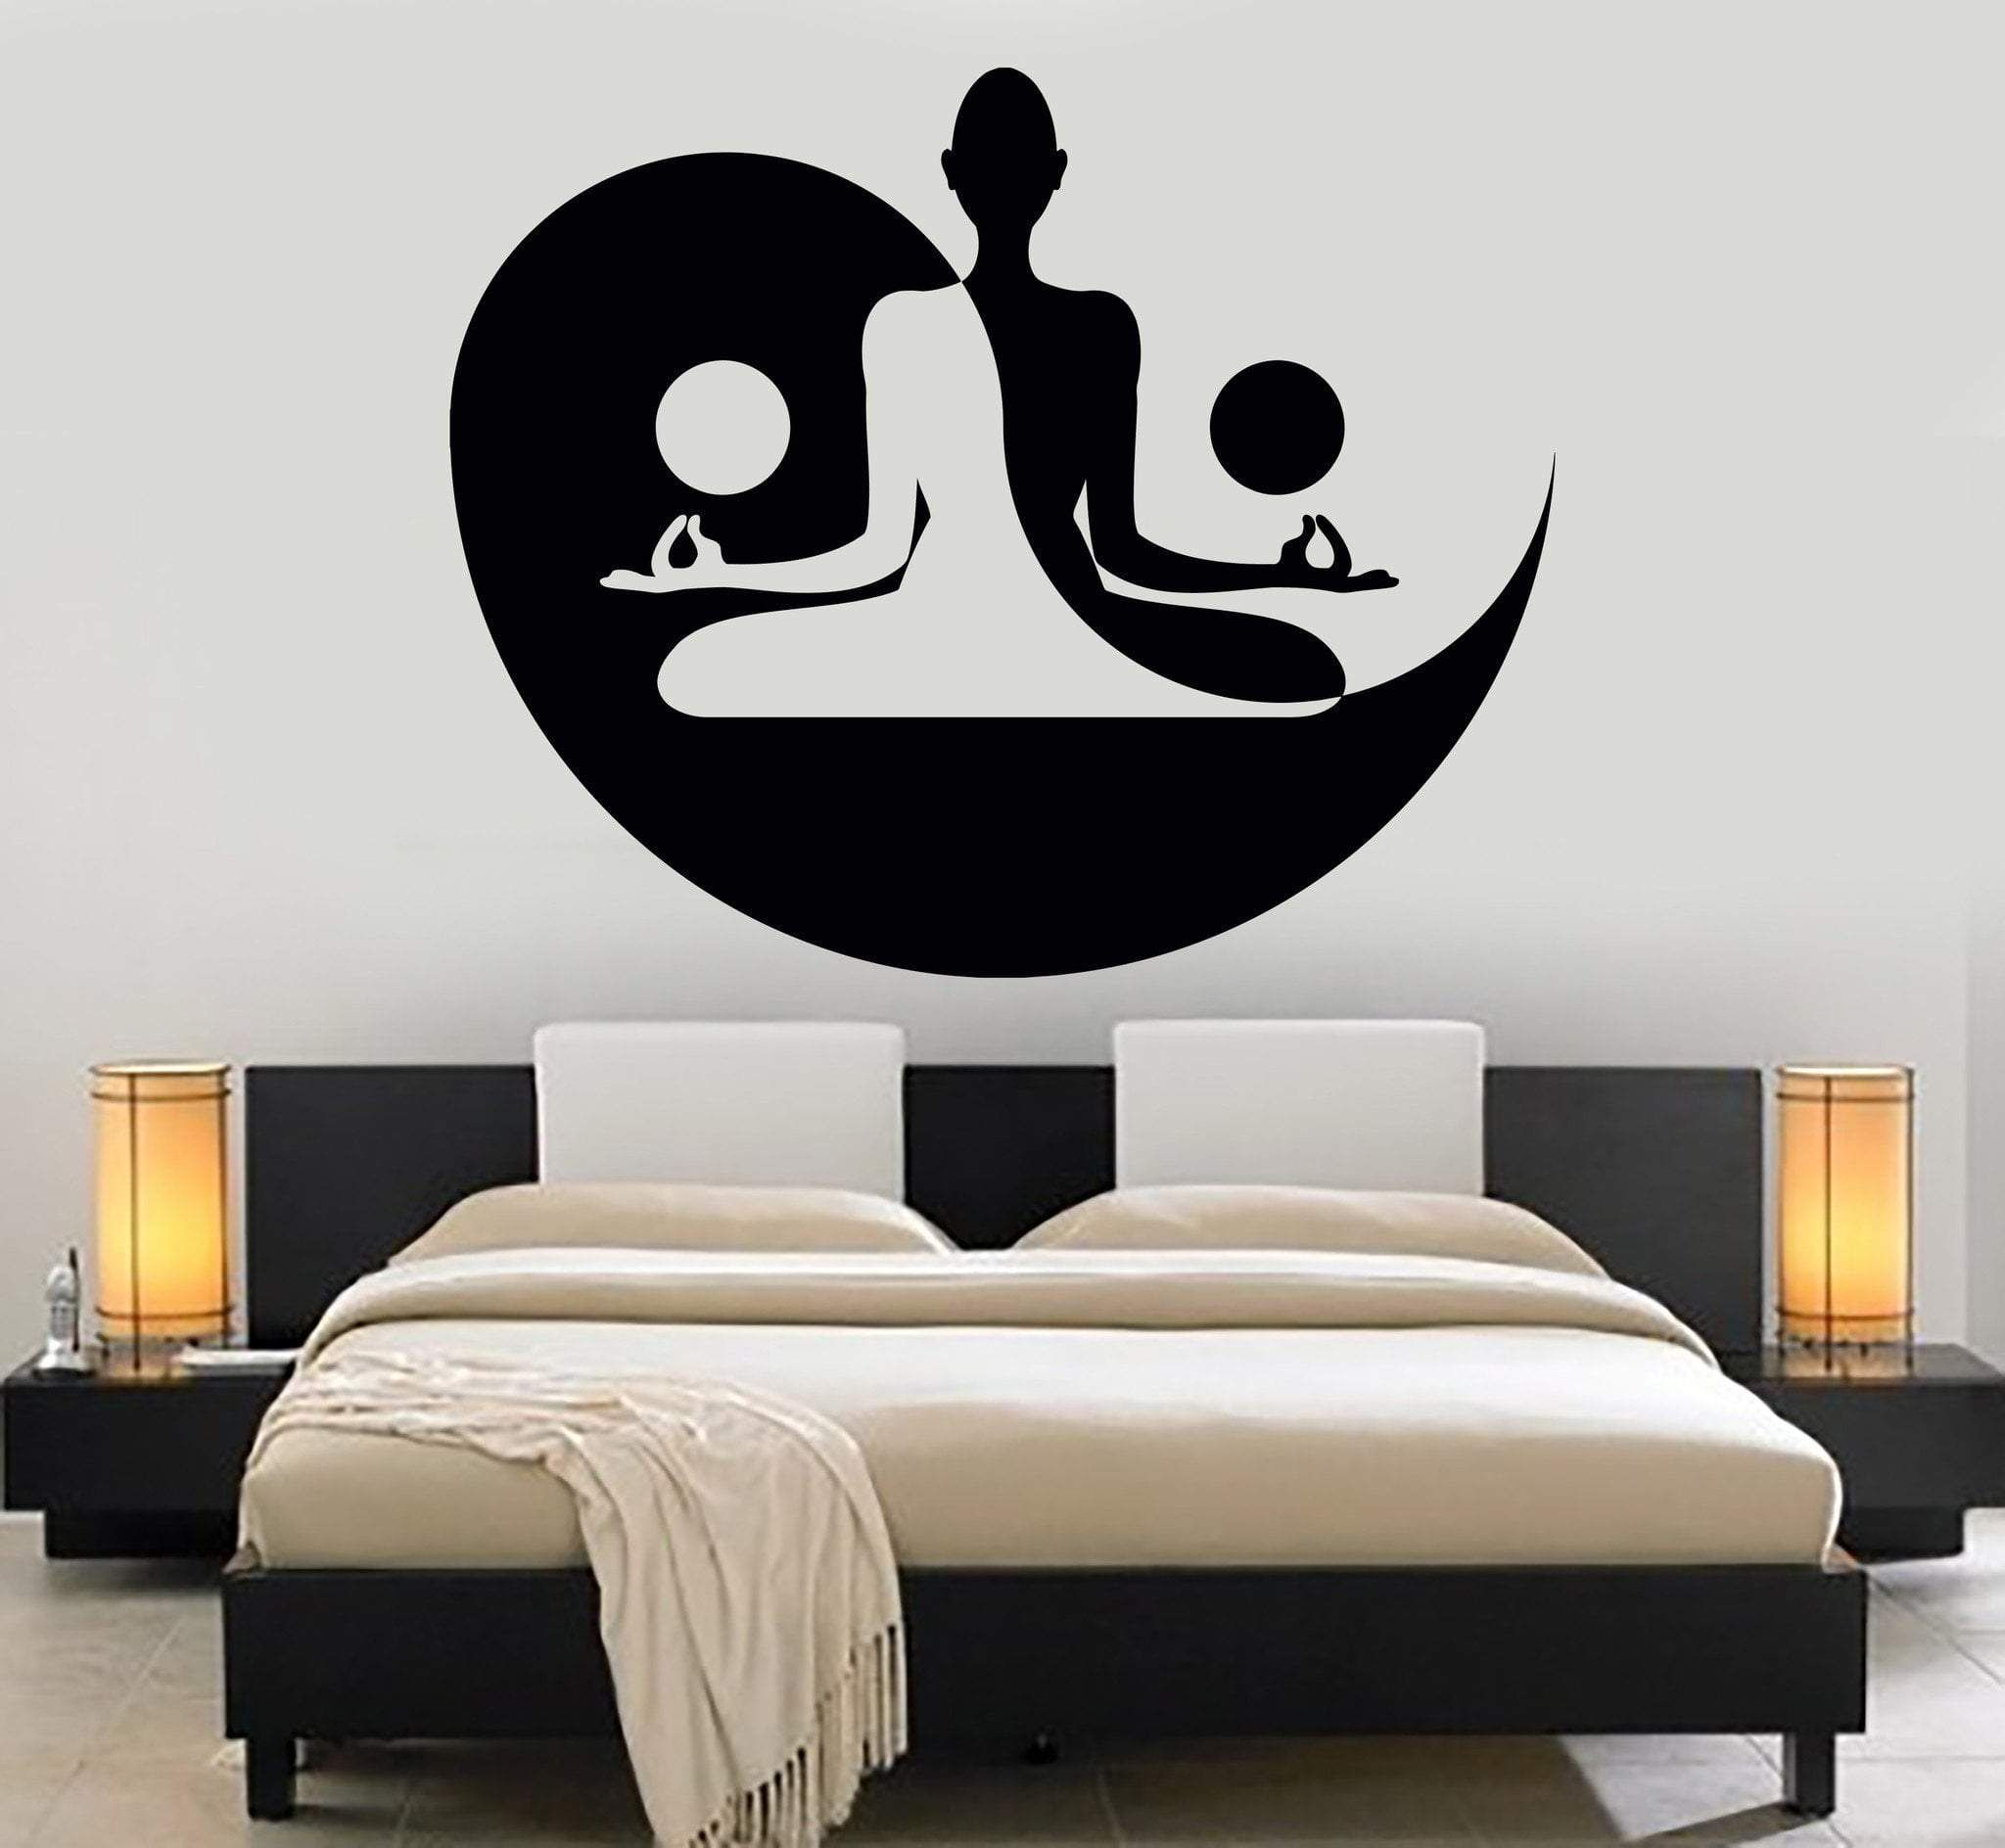 Vinyl Wall Decal Yin Yang Yoga Zen Meditation Bedroom Decor